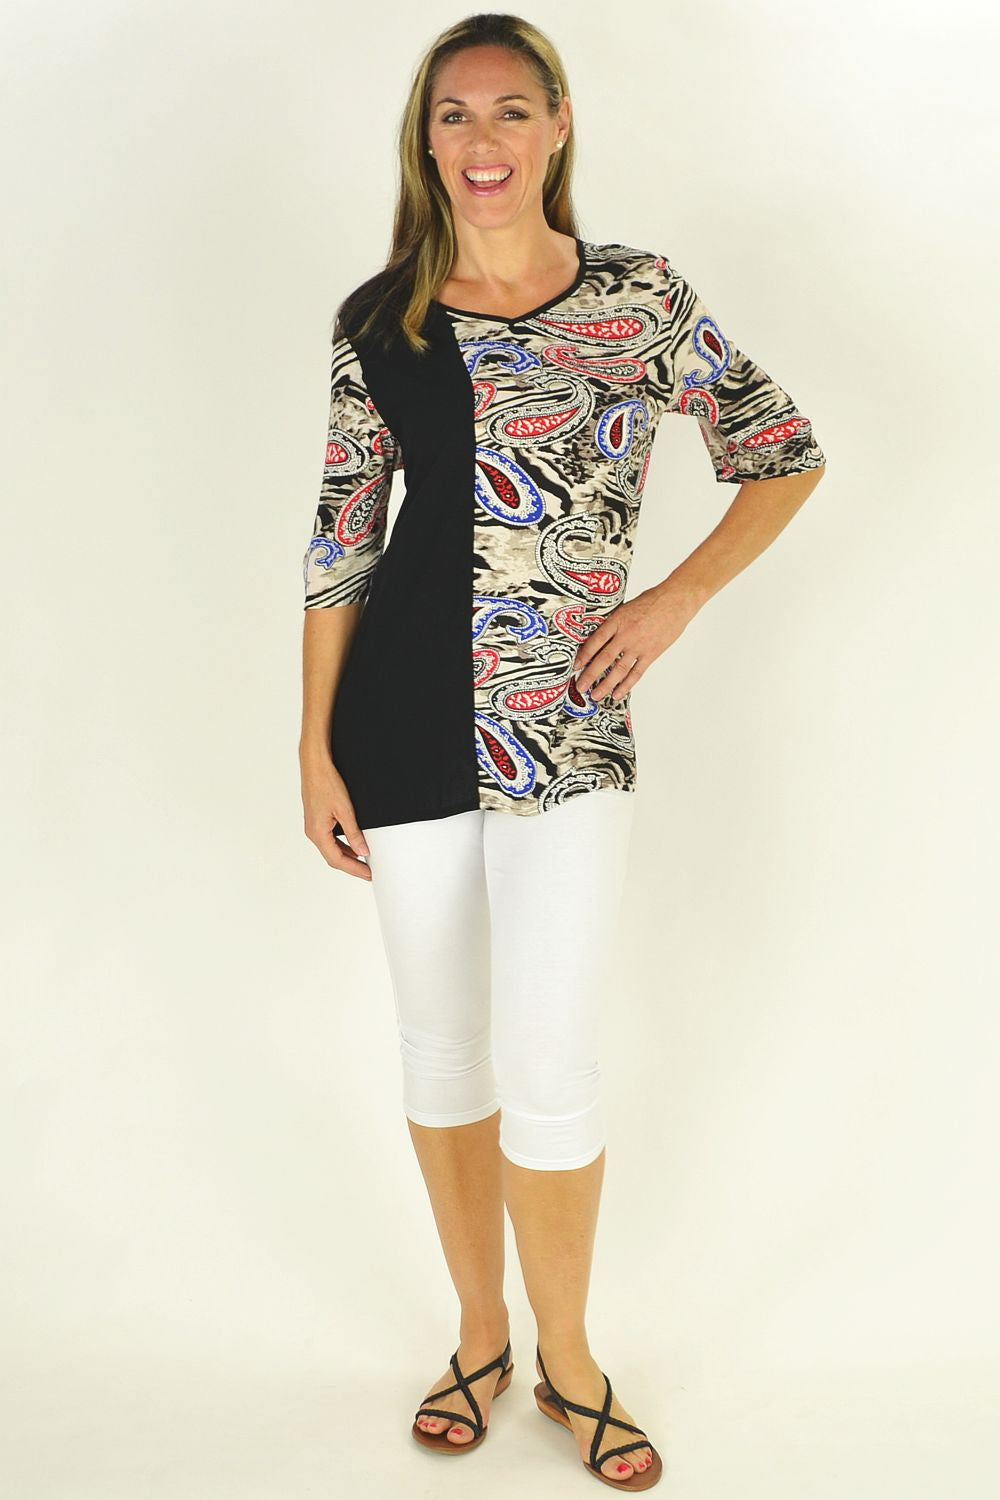 Penny Paisley Tunic - at I Love Tunics @ www.ilovetunics.com = Number One! Tunics Destination